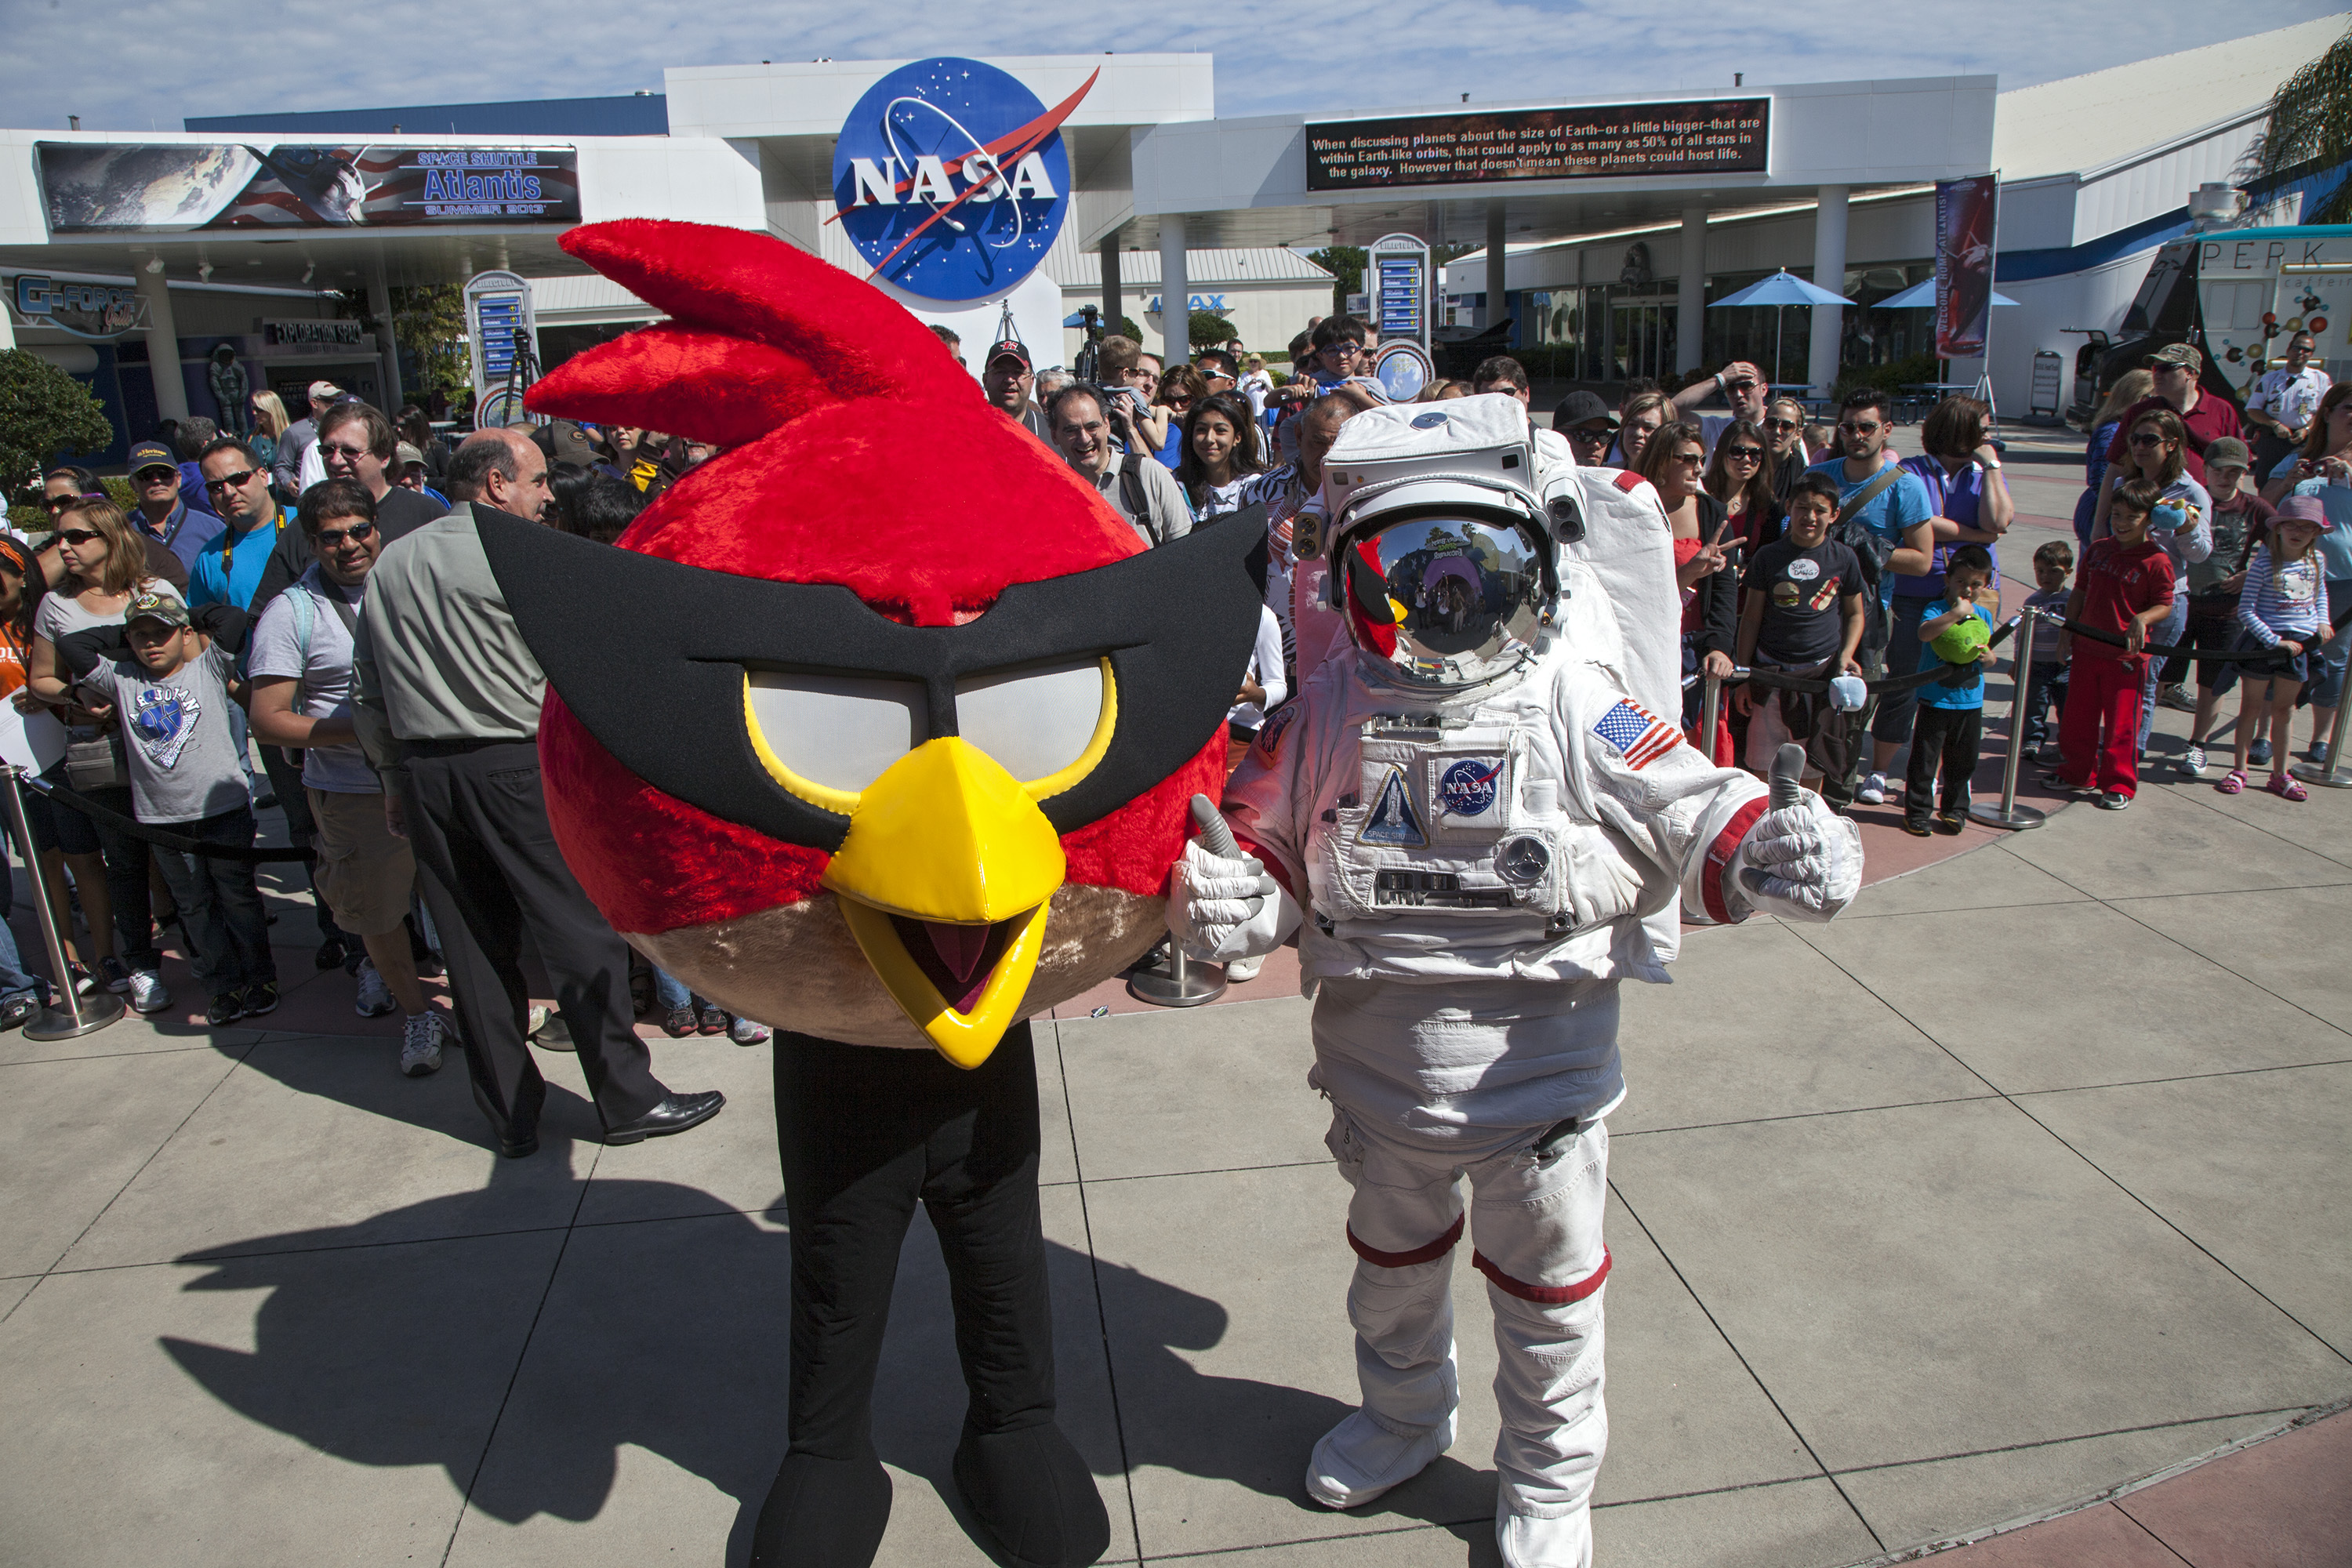 Spaceperson and Red Bird Welcome Visitors to Angry Birds Space Encounter